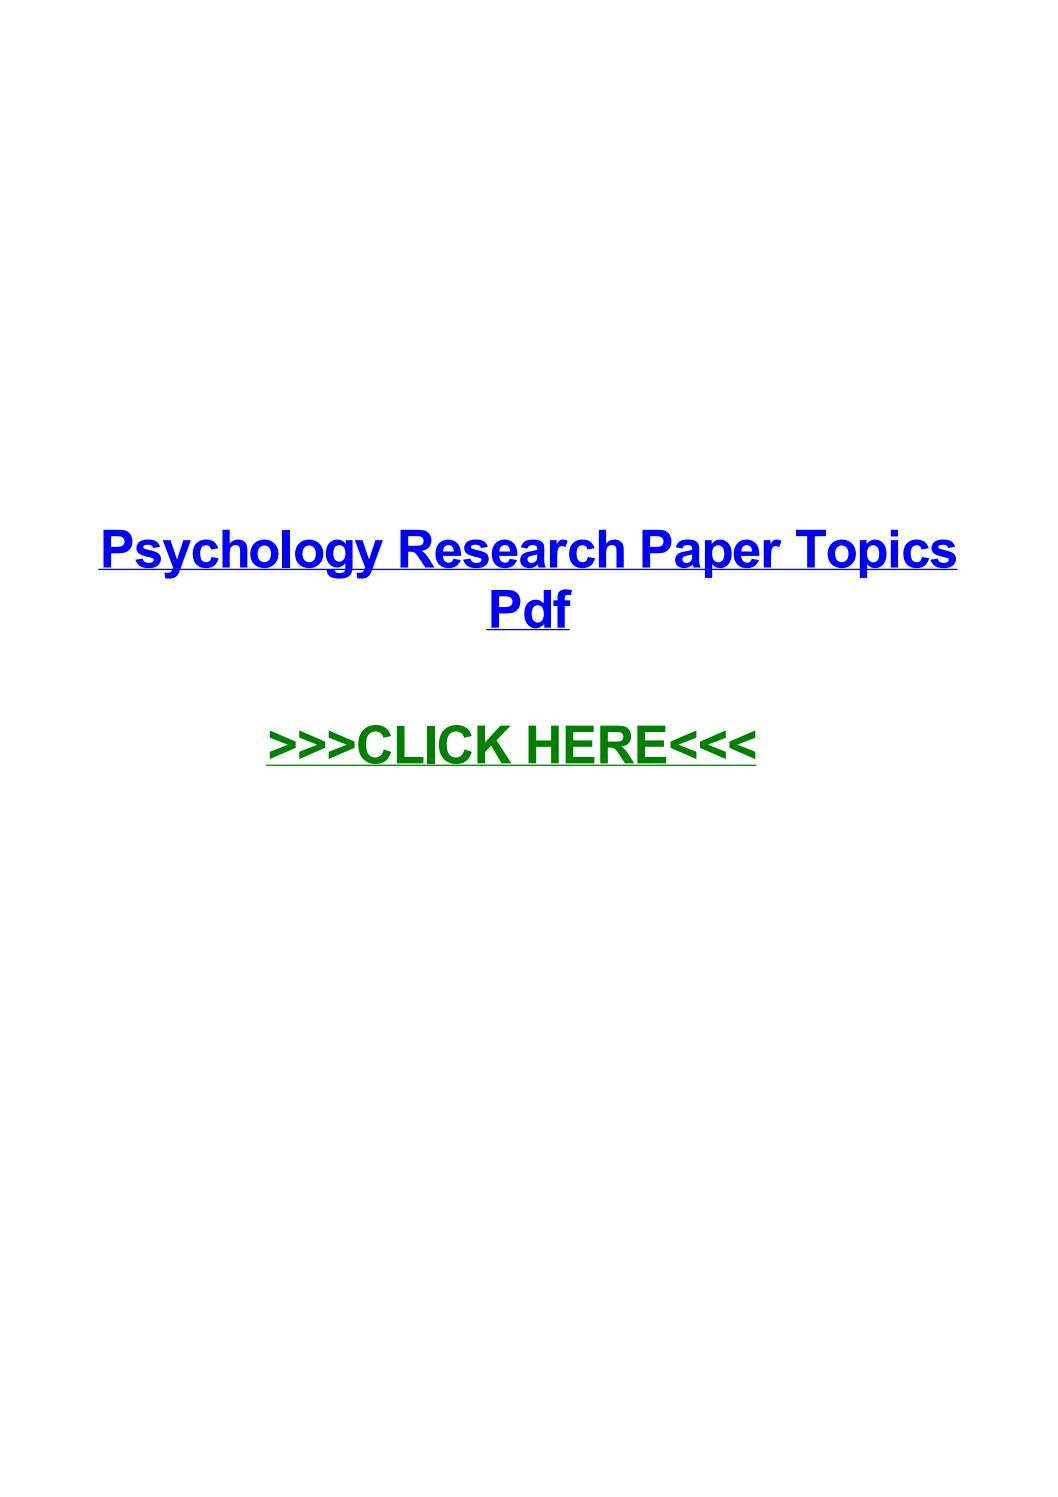 015 Psychology Research Paper Topics Pdf Page 1 Best Full